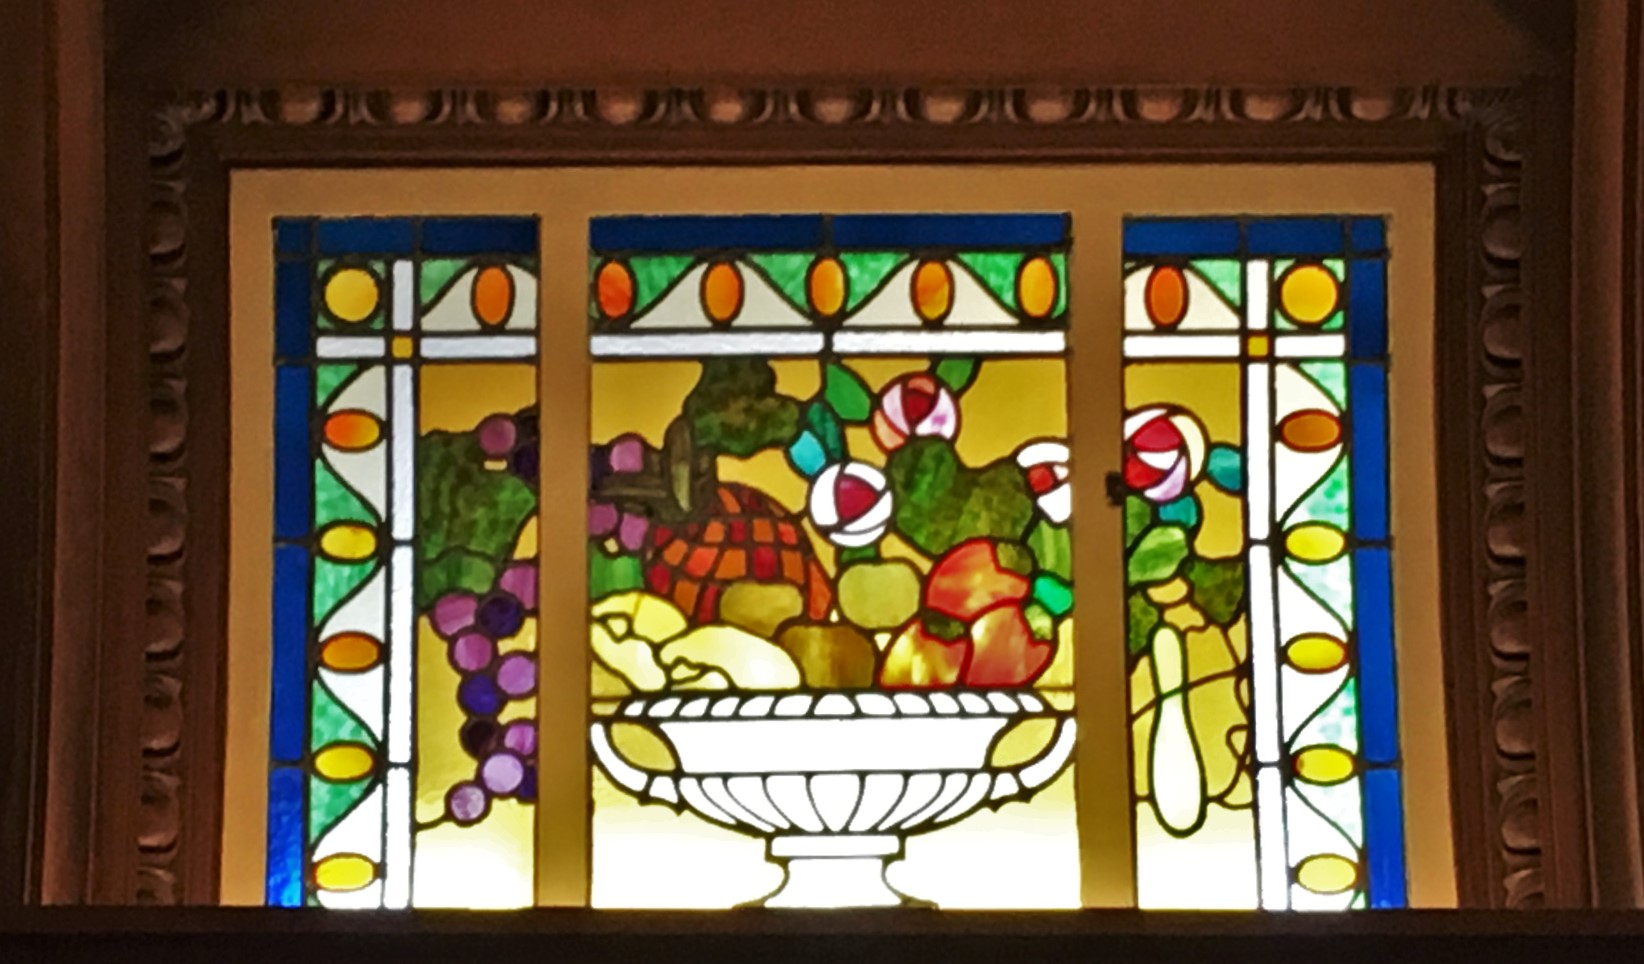 stained glass pane of a bowl of fruit warm backlight